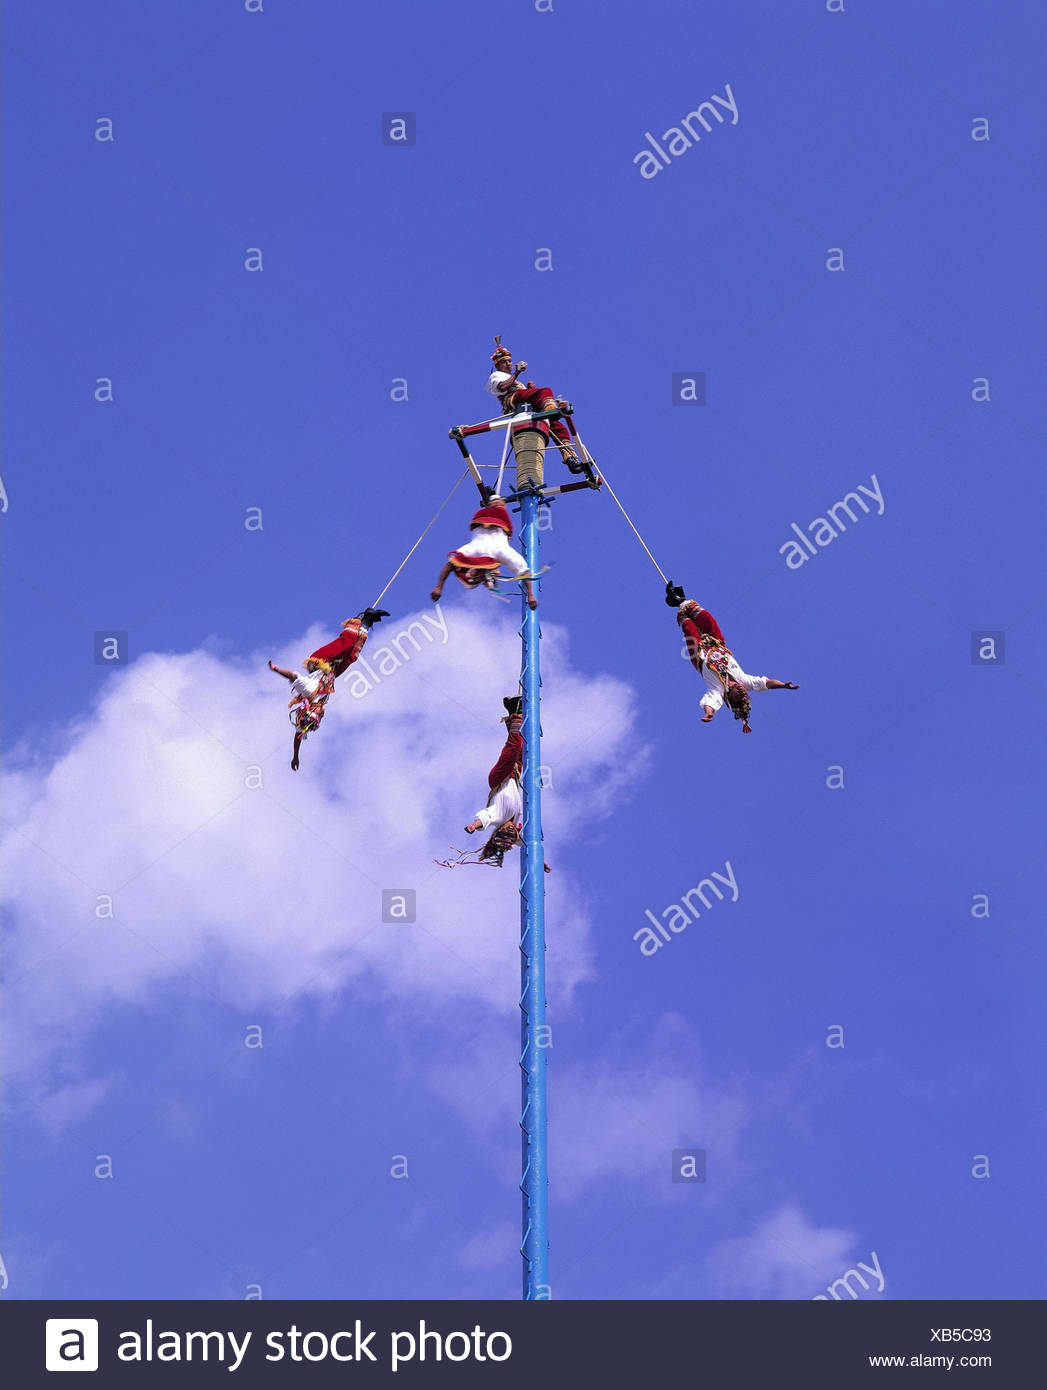 Mexico, federal state of Veracruz, el Tajin, showing, men 'Voladores', fertility rite Central America, México, Estados Unidos Mexicanos, rite, ceremony, fertility ceremony, tradition, plane game, historically, 'Tocotines', five, costumes, clothes, traditionally, mast, musician, musician, platform, 'overhung people', hang, fly headlong, angeseilt, circle, rotate, rotations, rope deal with, herabschweben, culture, heaven - Stock Image